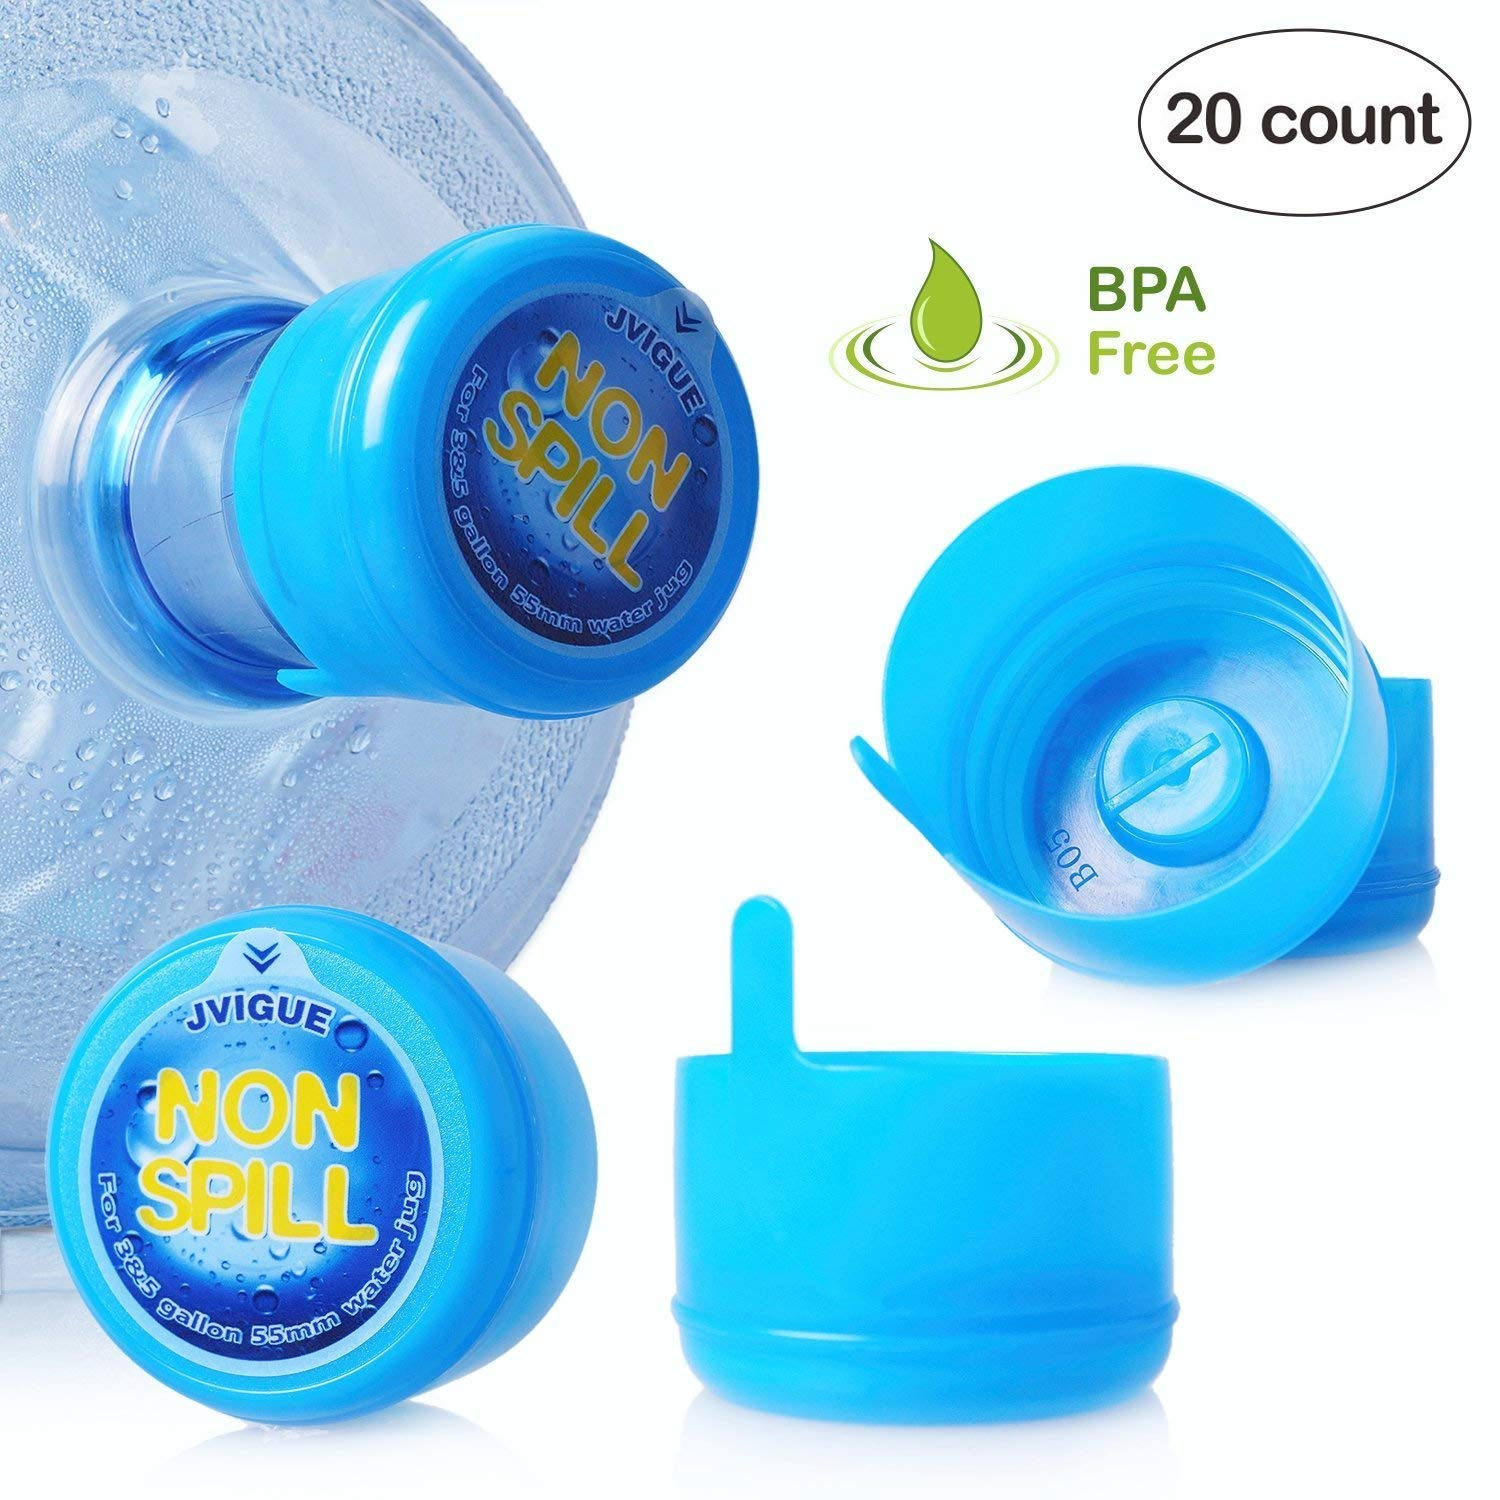 G/&G At Home Freed Cap Disposable Sports Water Bottle Cap for Generic Water Bottles Six Replacement Sports caps